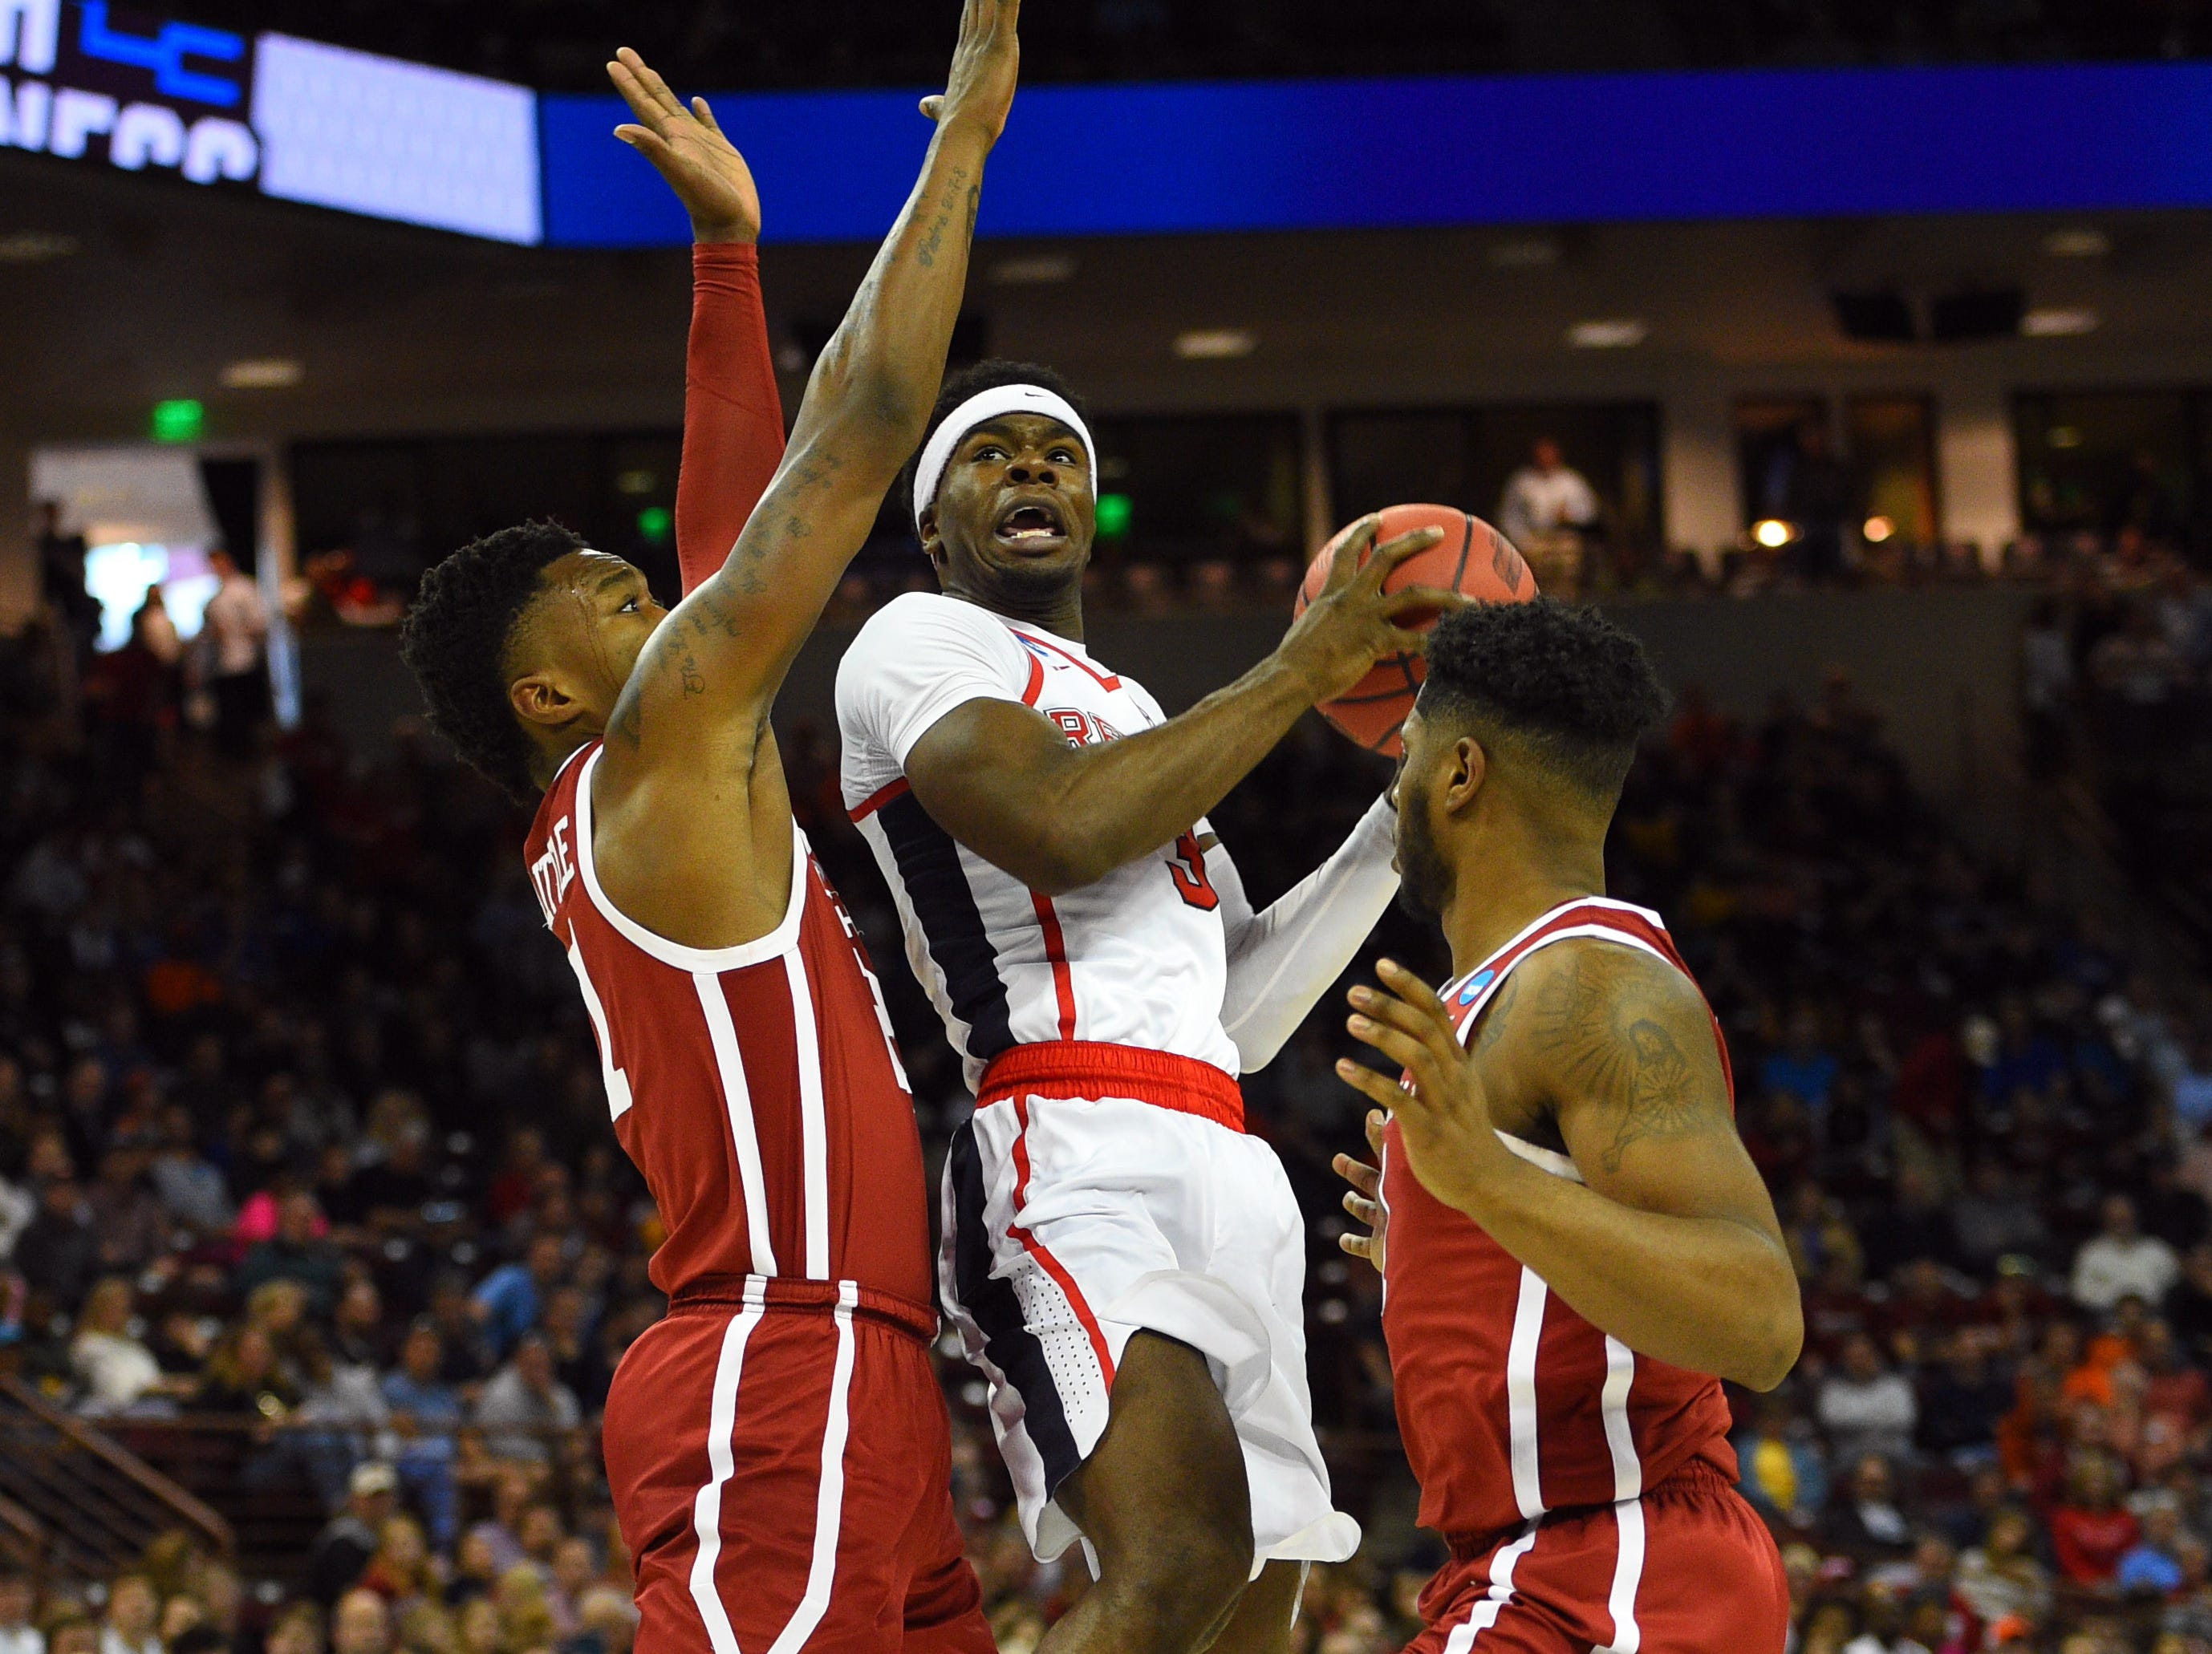 Mar 22, 2019; Columbia, SC, USA; Mississippi Rebels guard Terence Davis (3) drives during the basket during the second half against the Oklahoma Sooners in the first round of the 2019 NCAA Tournament at Colonial Life Arena. Mandatory Credit: Bob Donnan-USA TODAY Sports